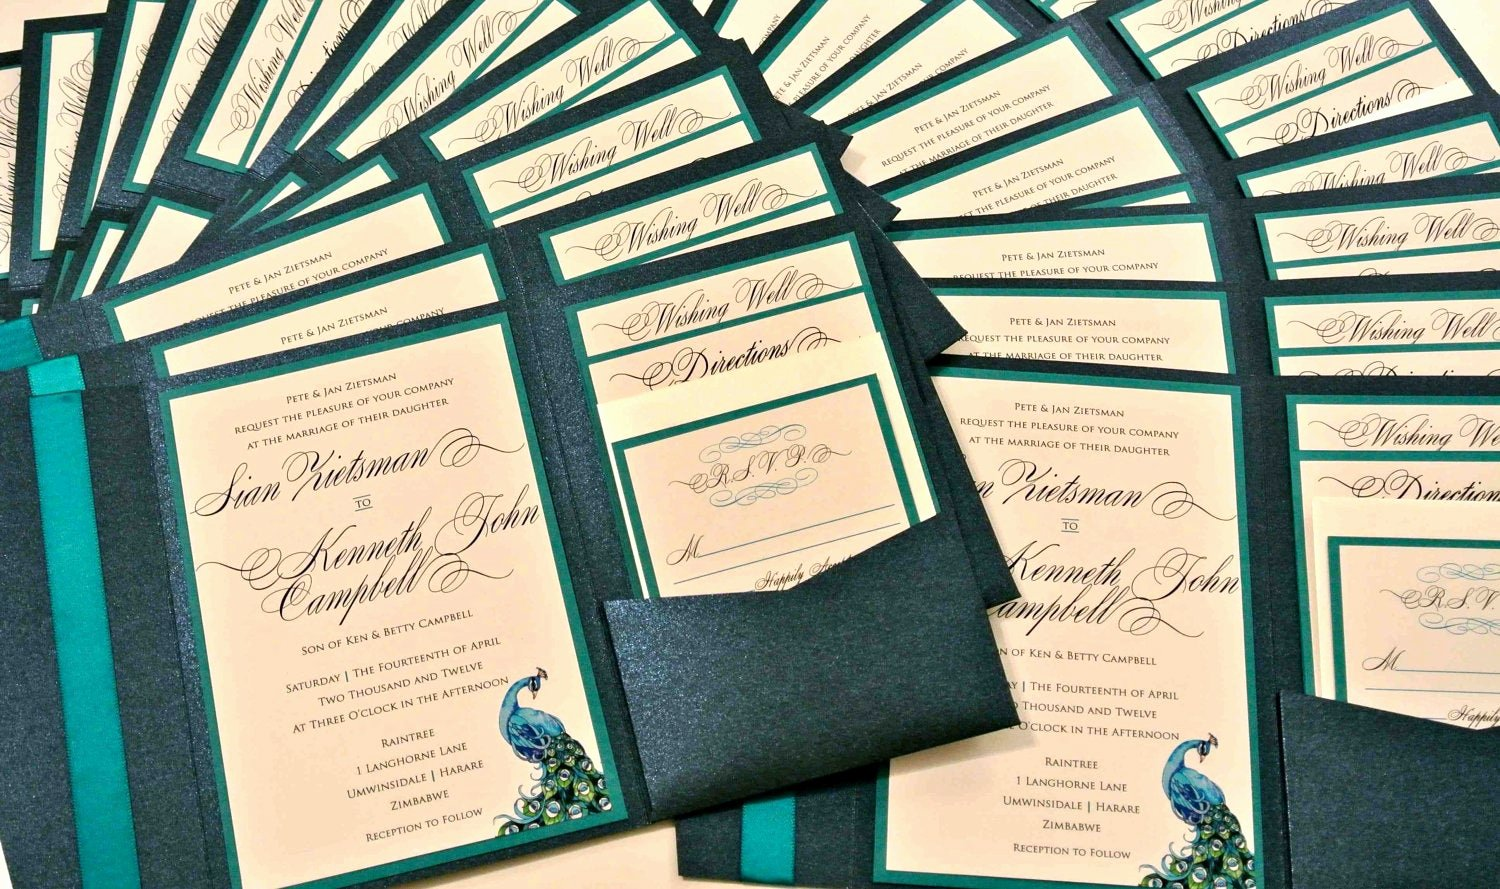 Peacock Feather Wedding Invitations Lovely Custom Peacock Feather Pocketfold Wedding by 1 Akindcustomdesign